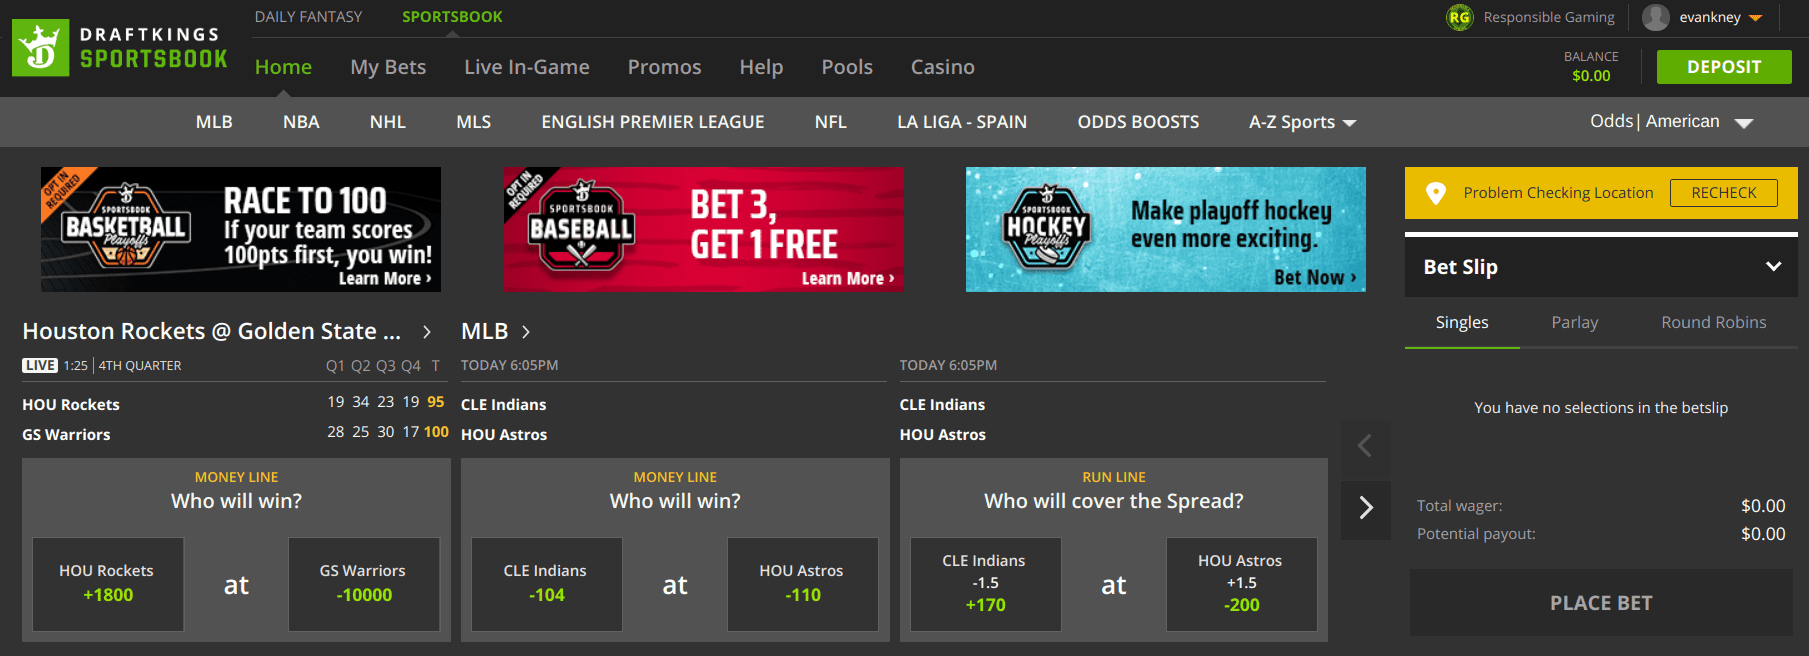 DraftKings Sportsbook Home